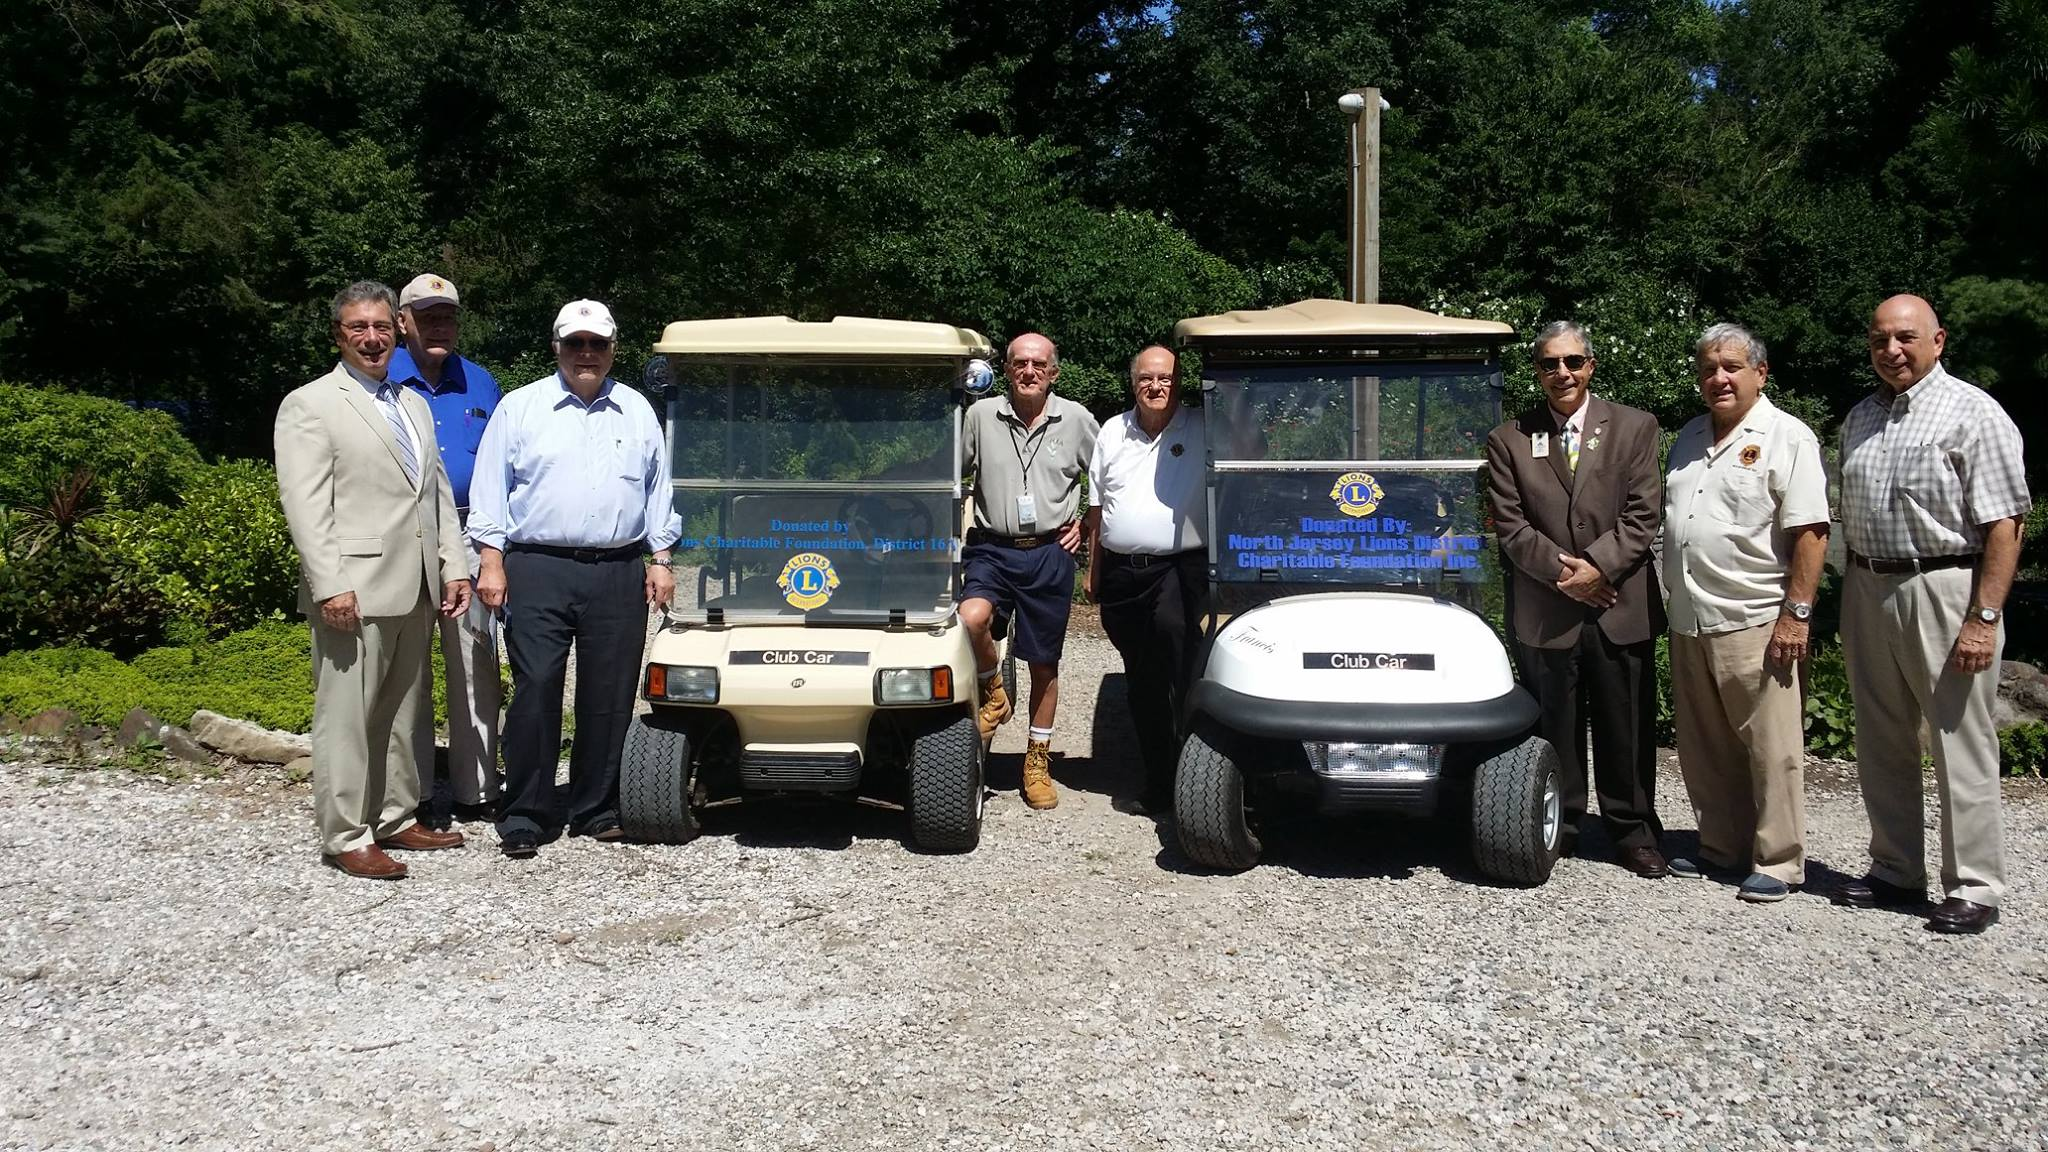 Wayne Lions and Lions District 16N donate Golf Carts to Laurelwood